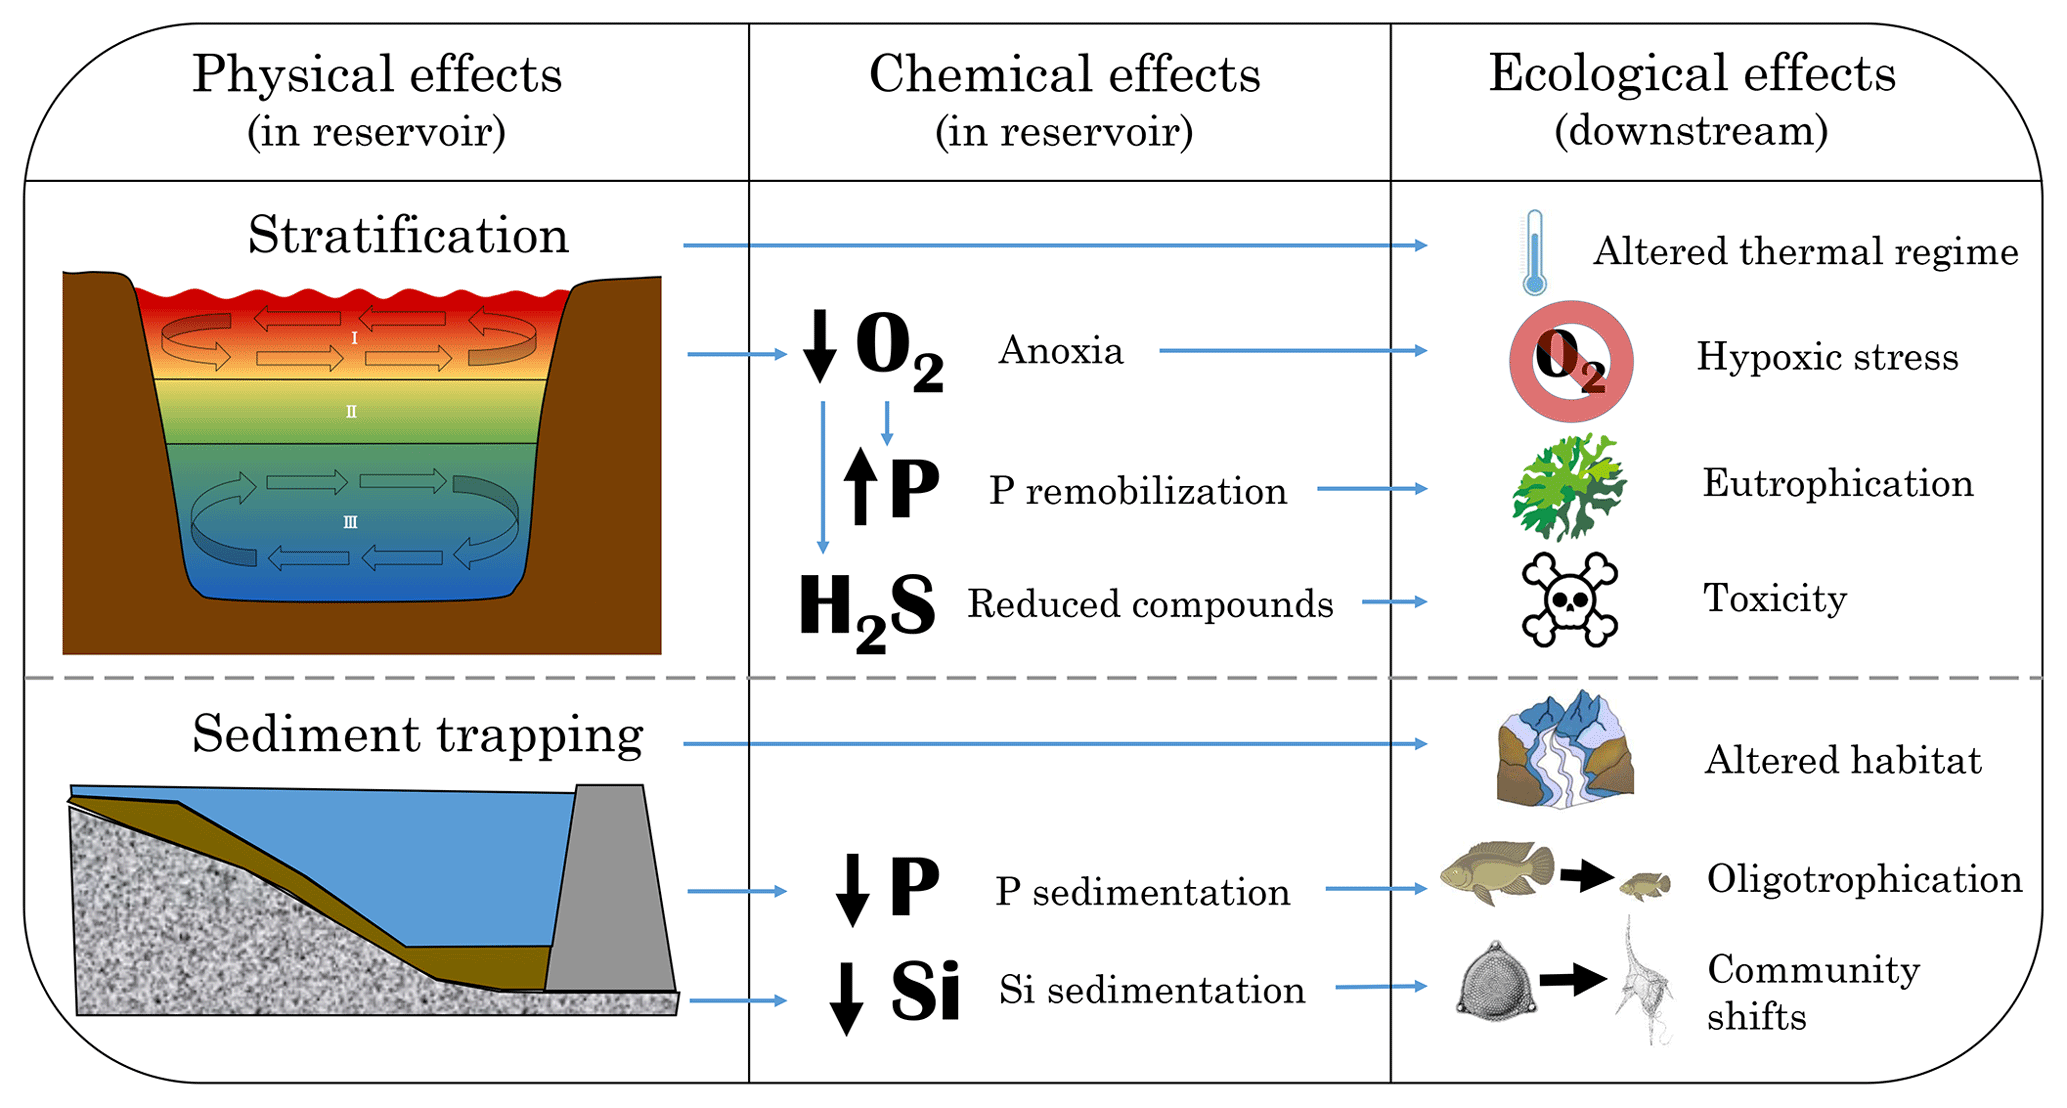 BG - Reviews and syntheses: Dams, water quality and tropical